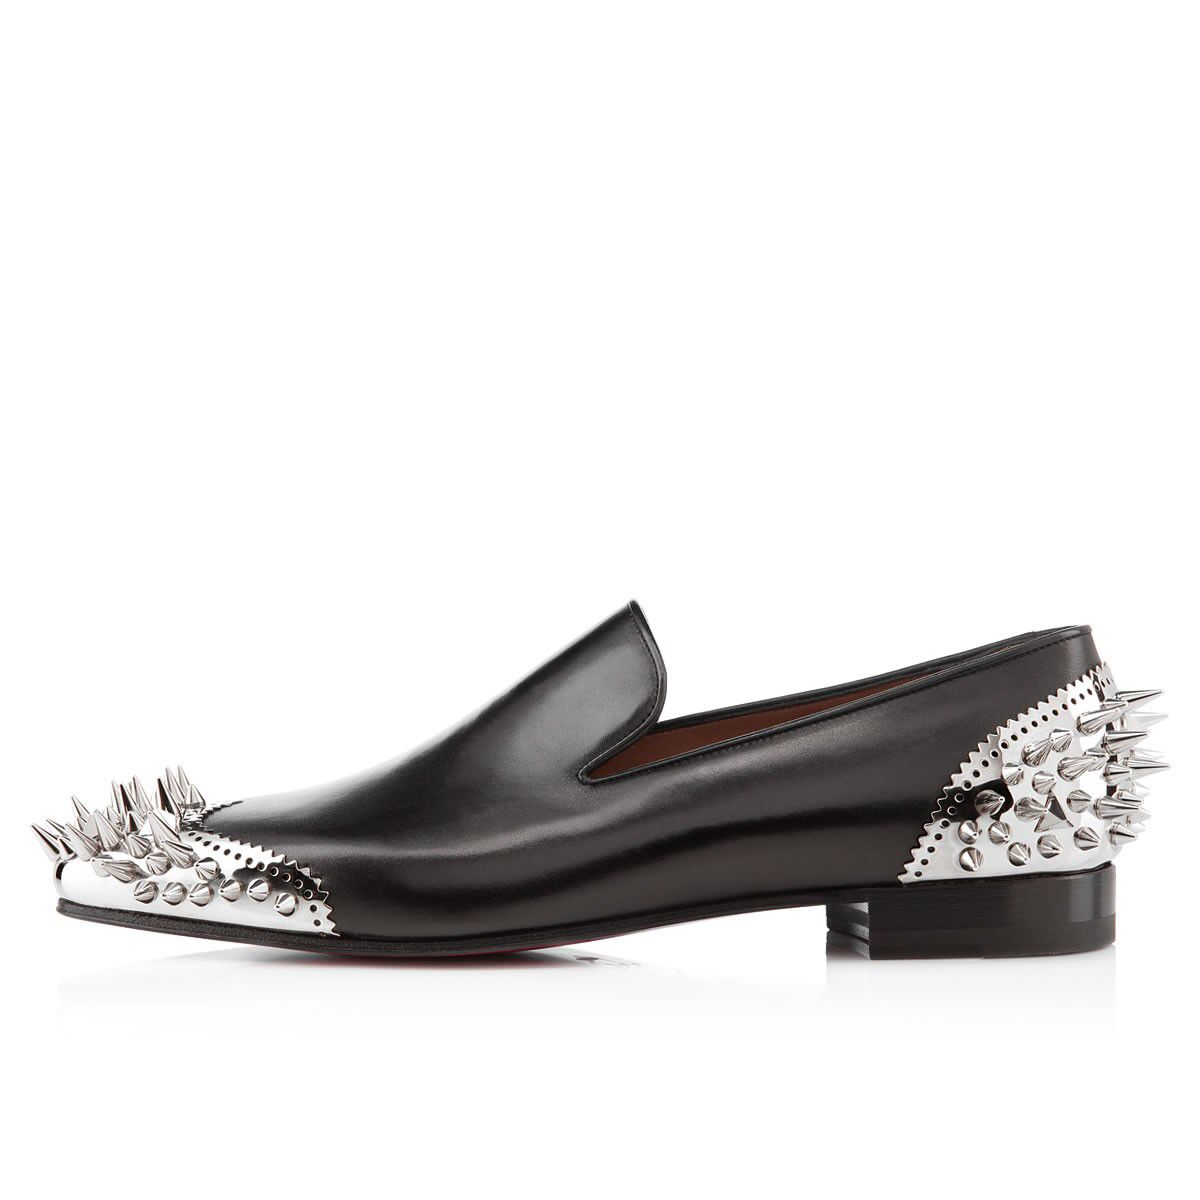 Explore Louboutin Shoes, Christian Louboutin and more!